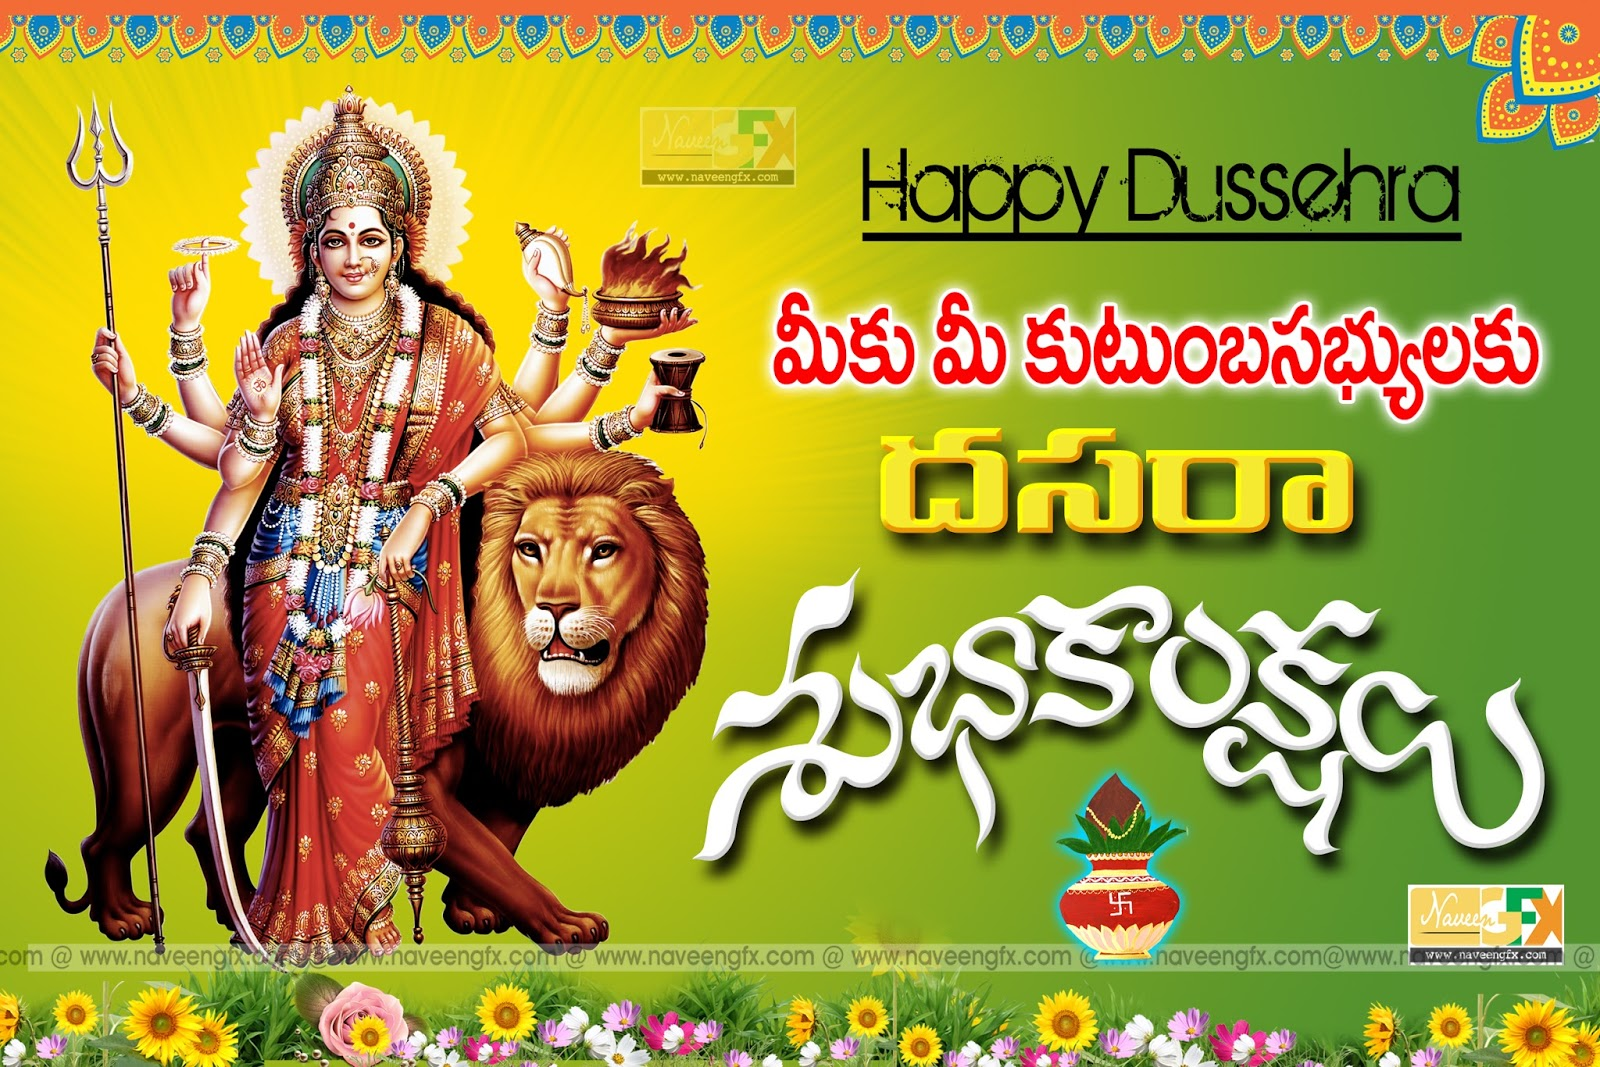 Happy Birthday Pooja Wallpaper Hd Happy Dussehra Latest Telugu Quotes And Wishes Hd Images